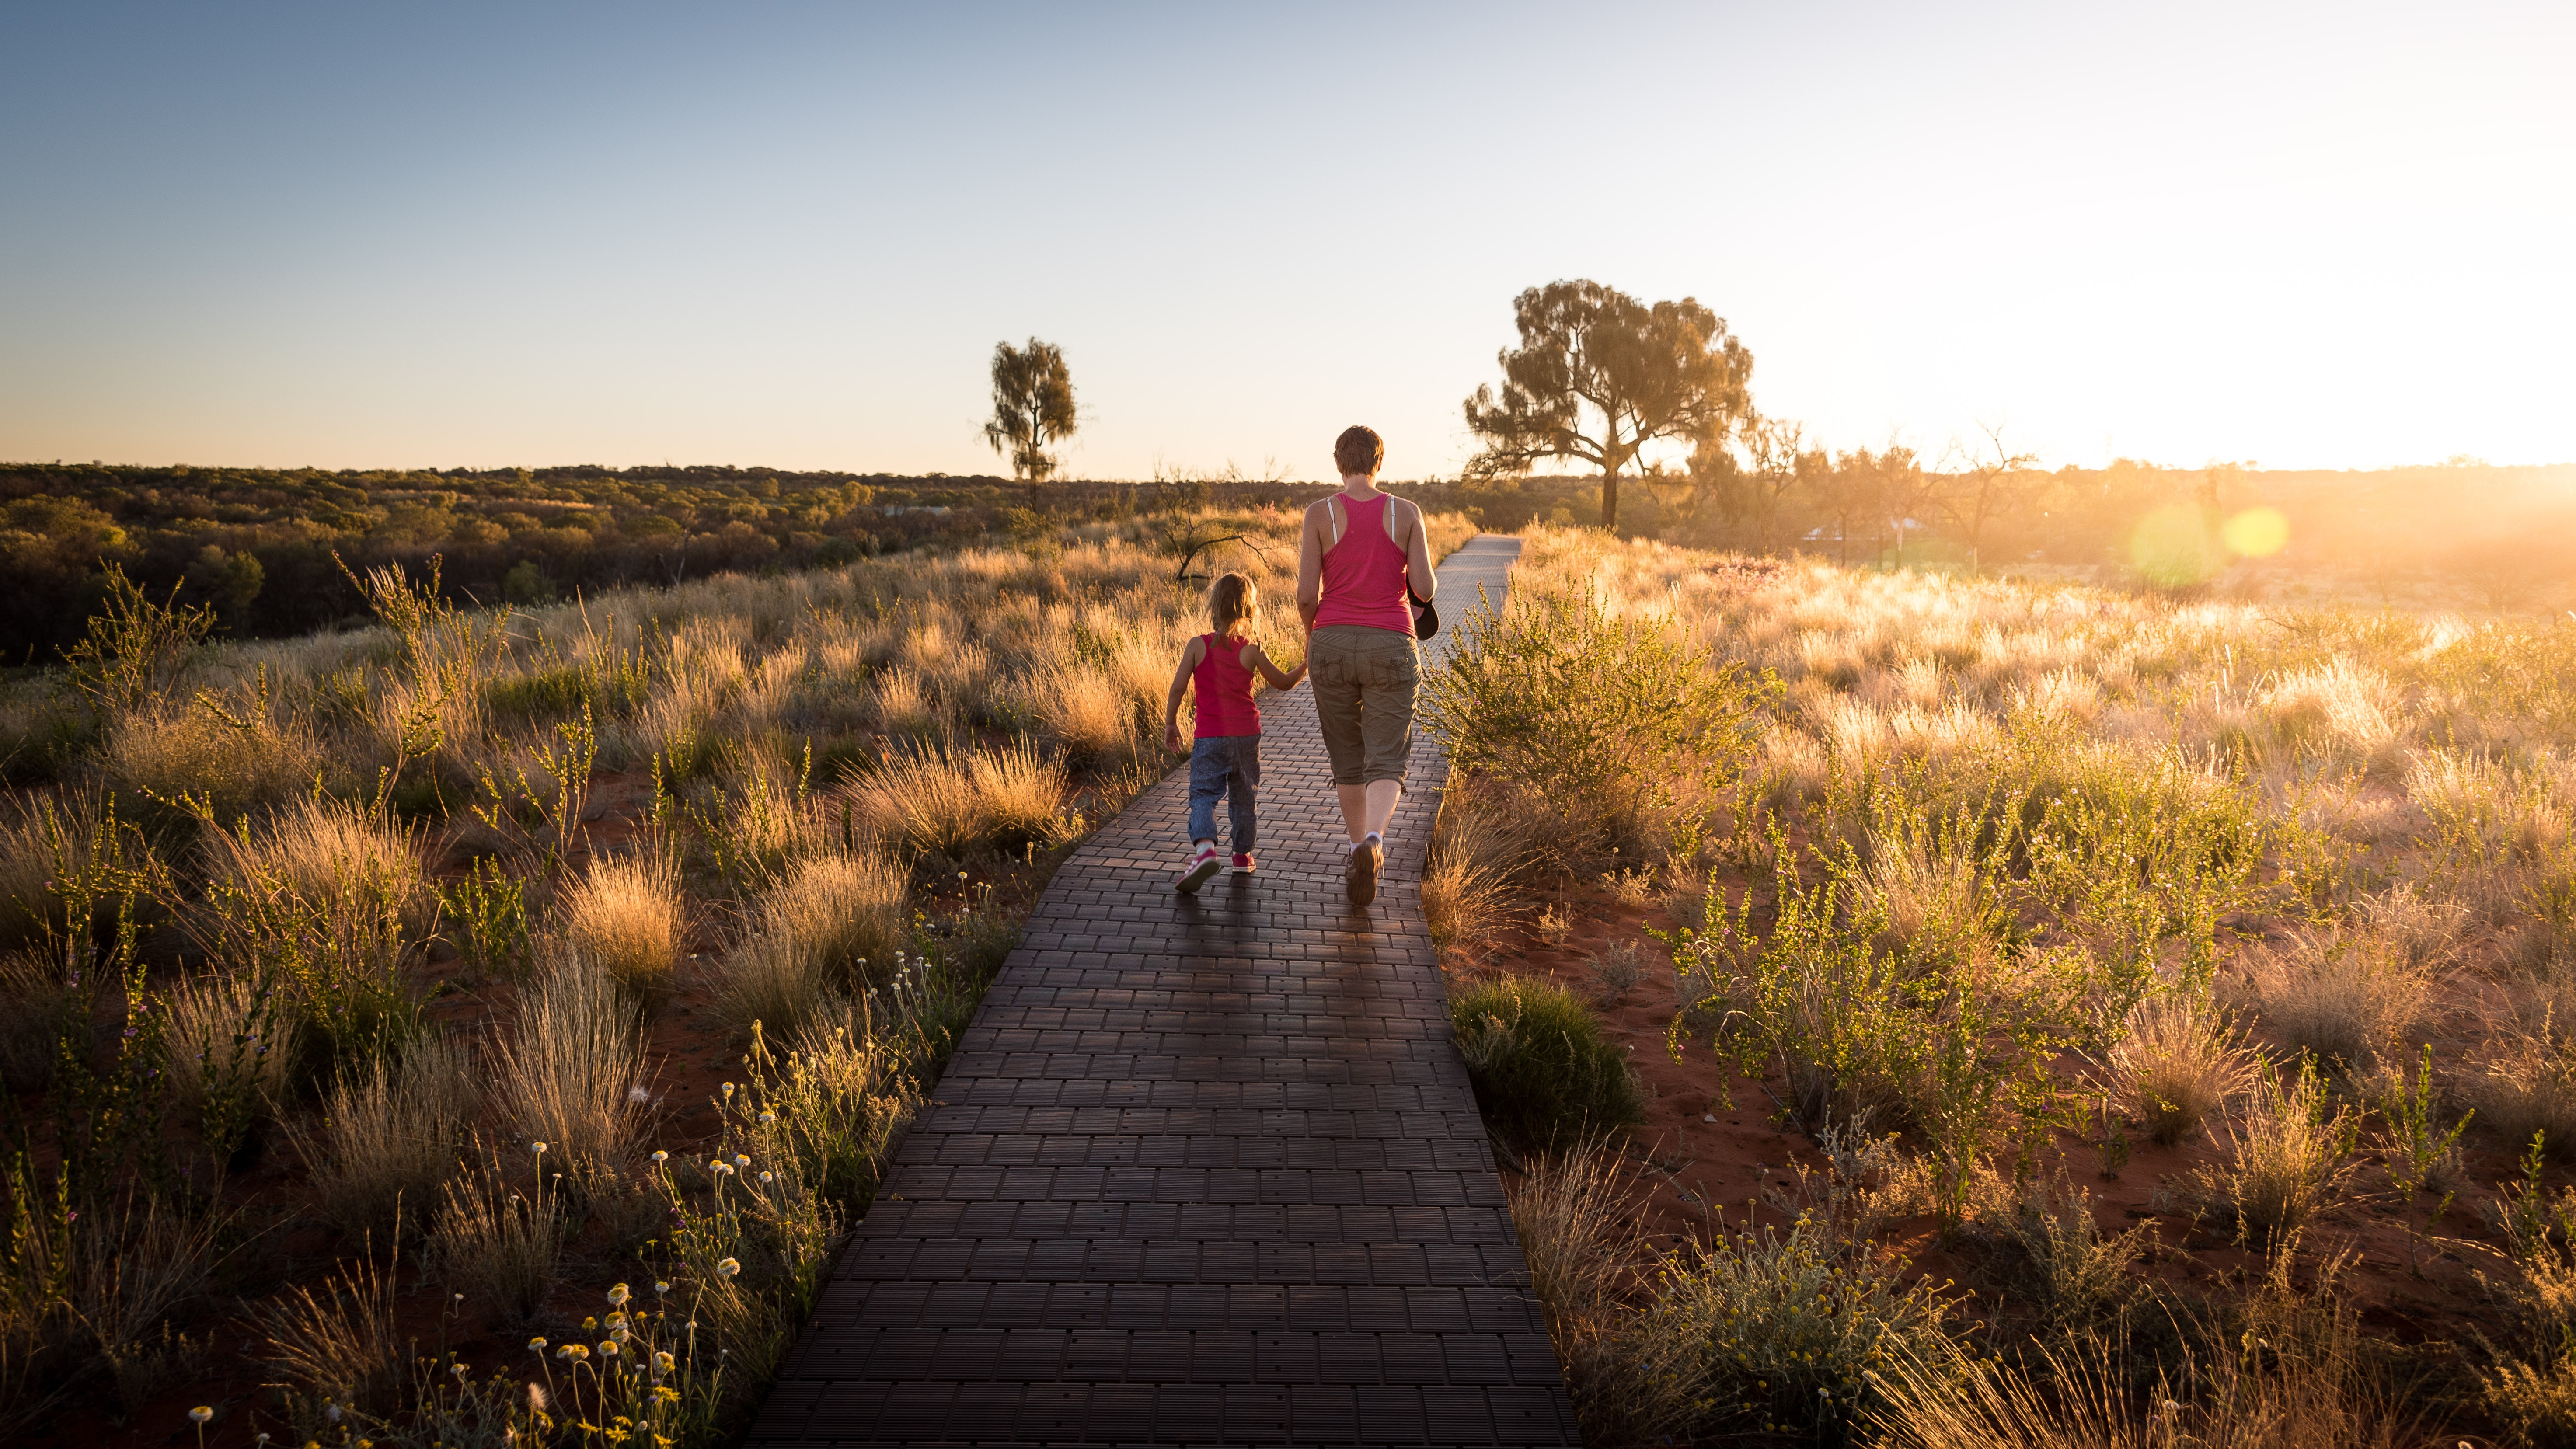 A mom and daughter both wearing pink vest tops, walking on a gangway surrounded by grass and foliage in the sunshine